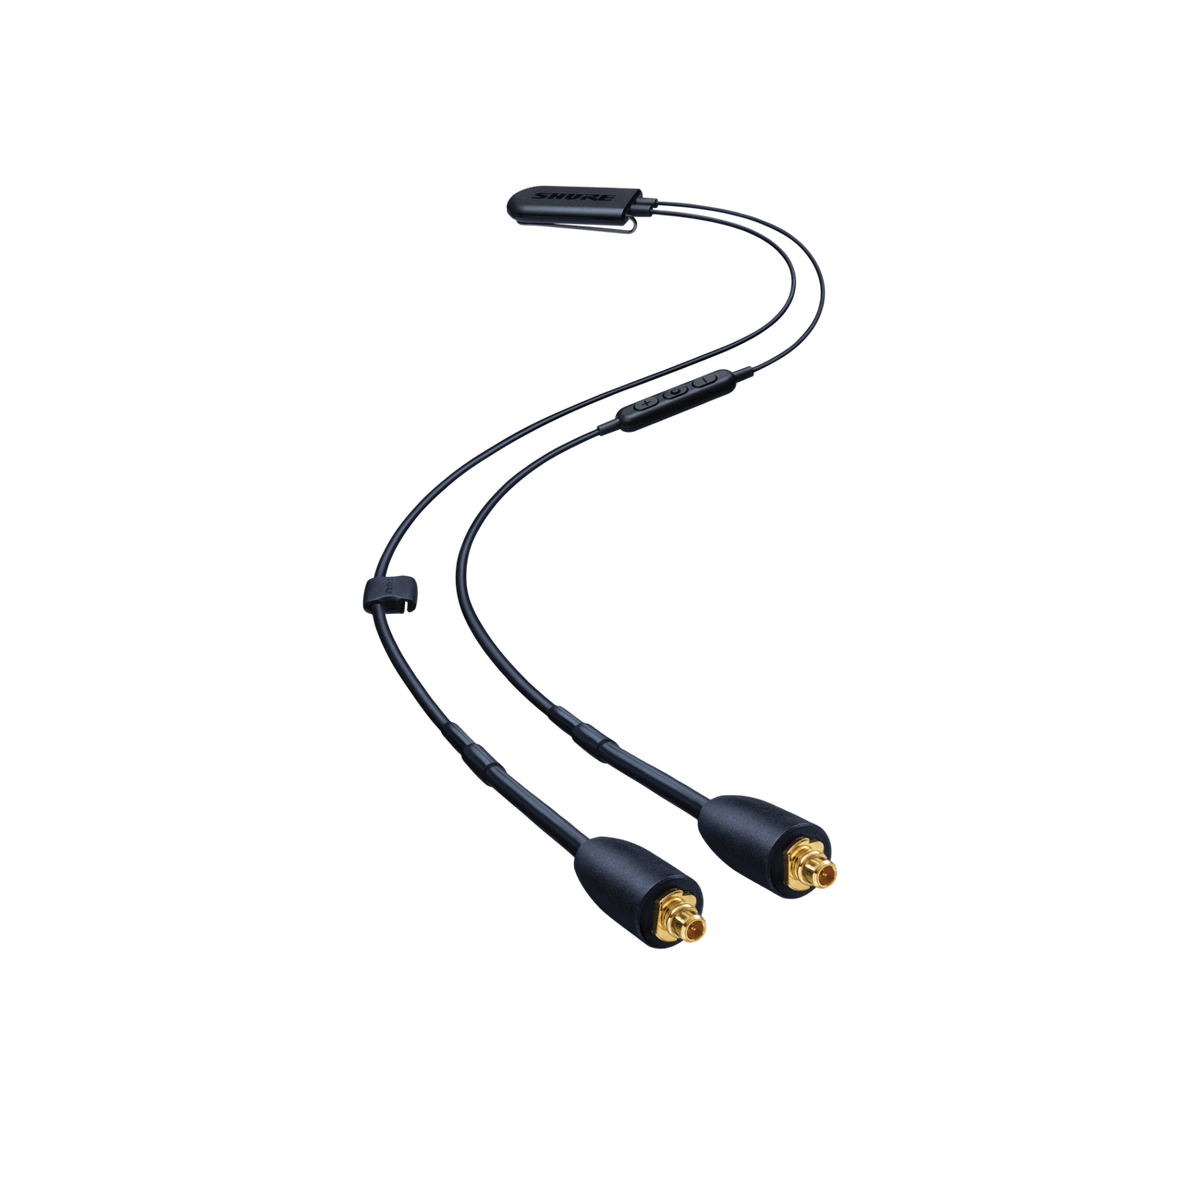 Shure RMCE-BT2 High-Resolution Bluetooth® 5 Earphone Communication Cable